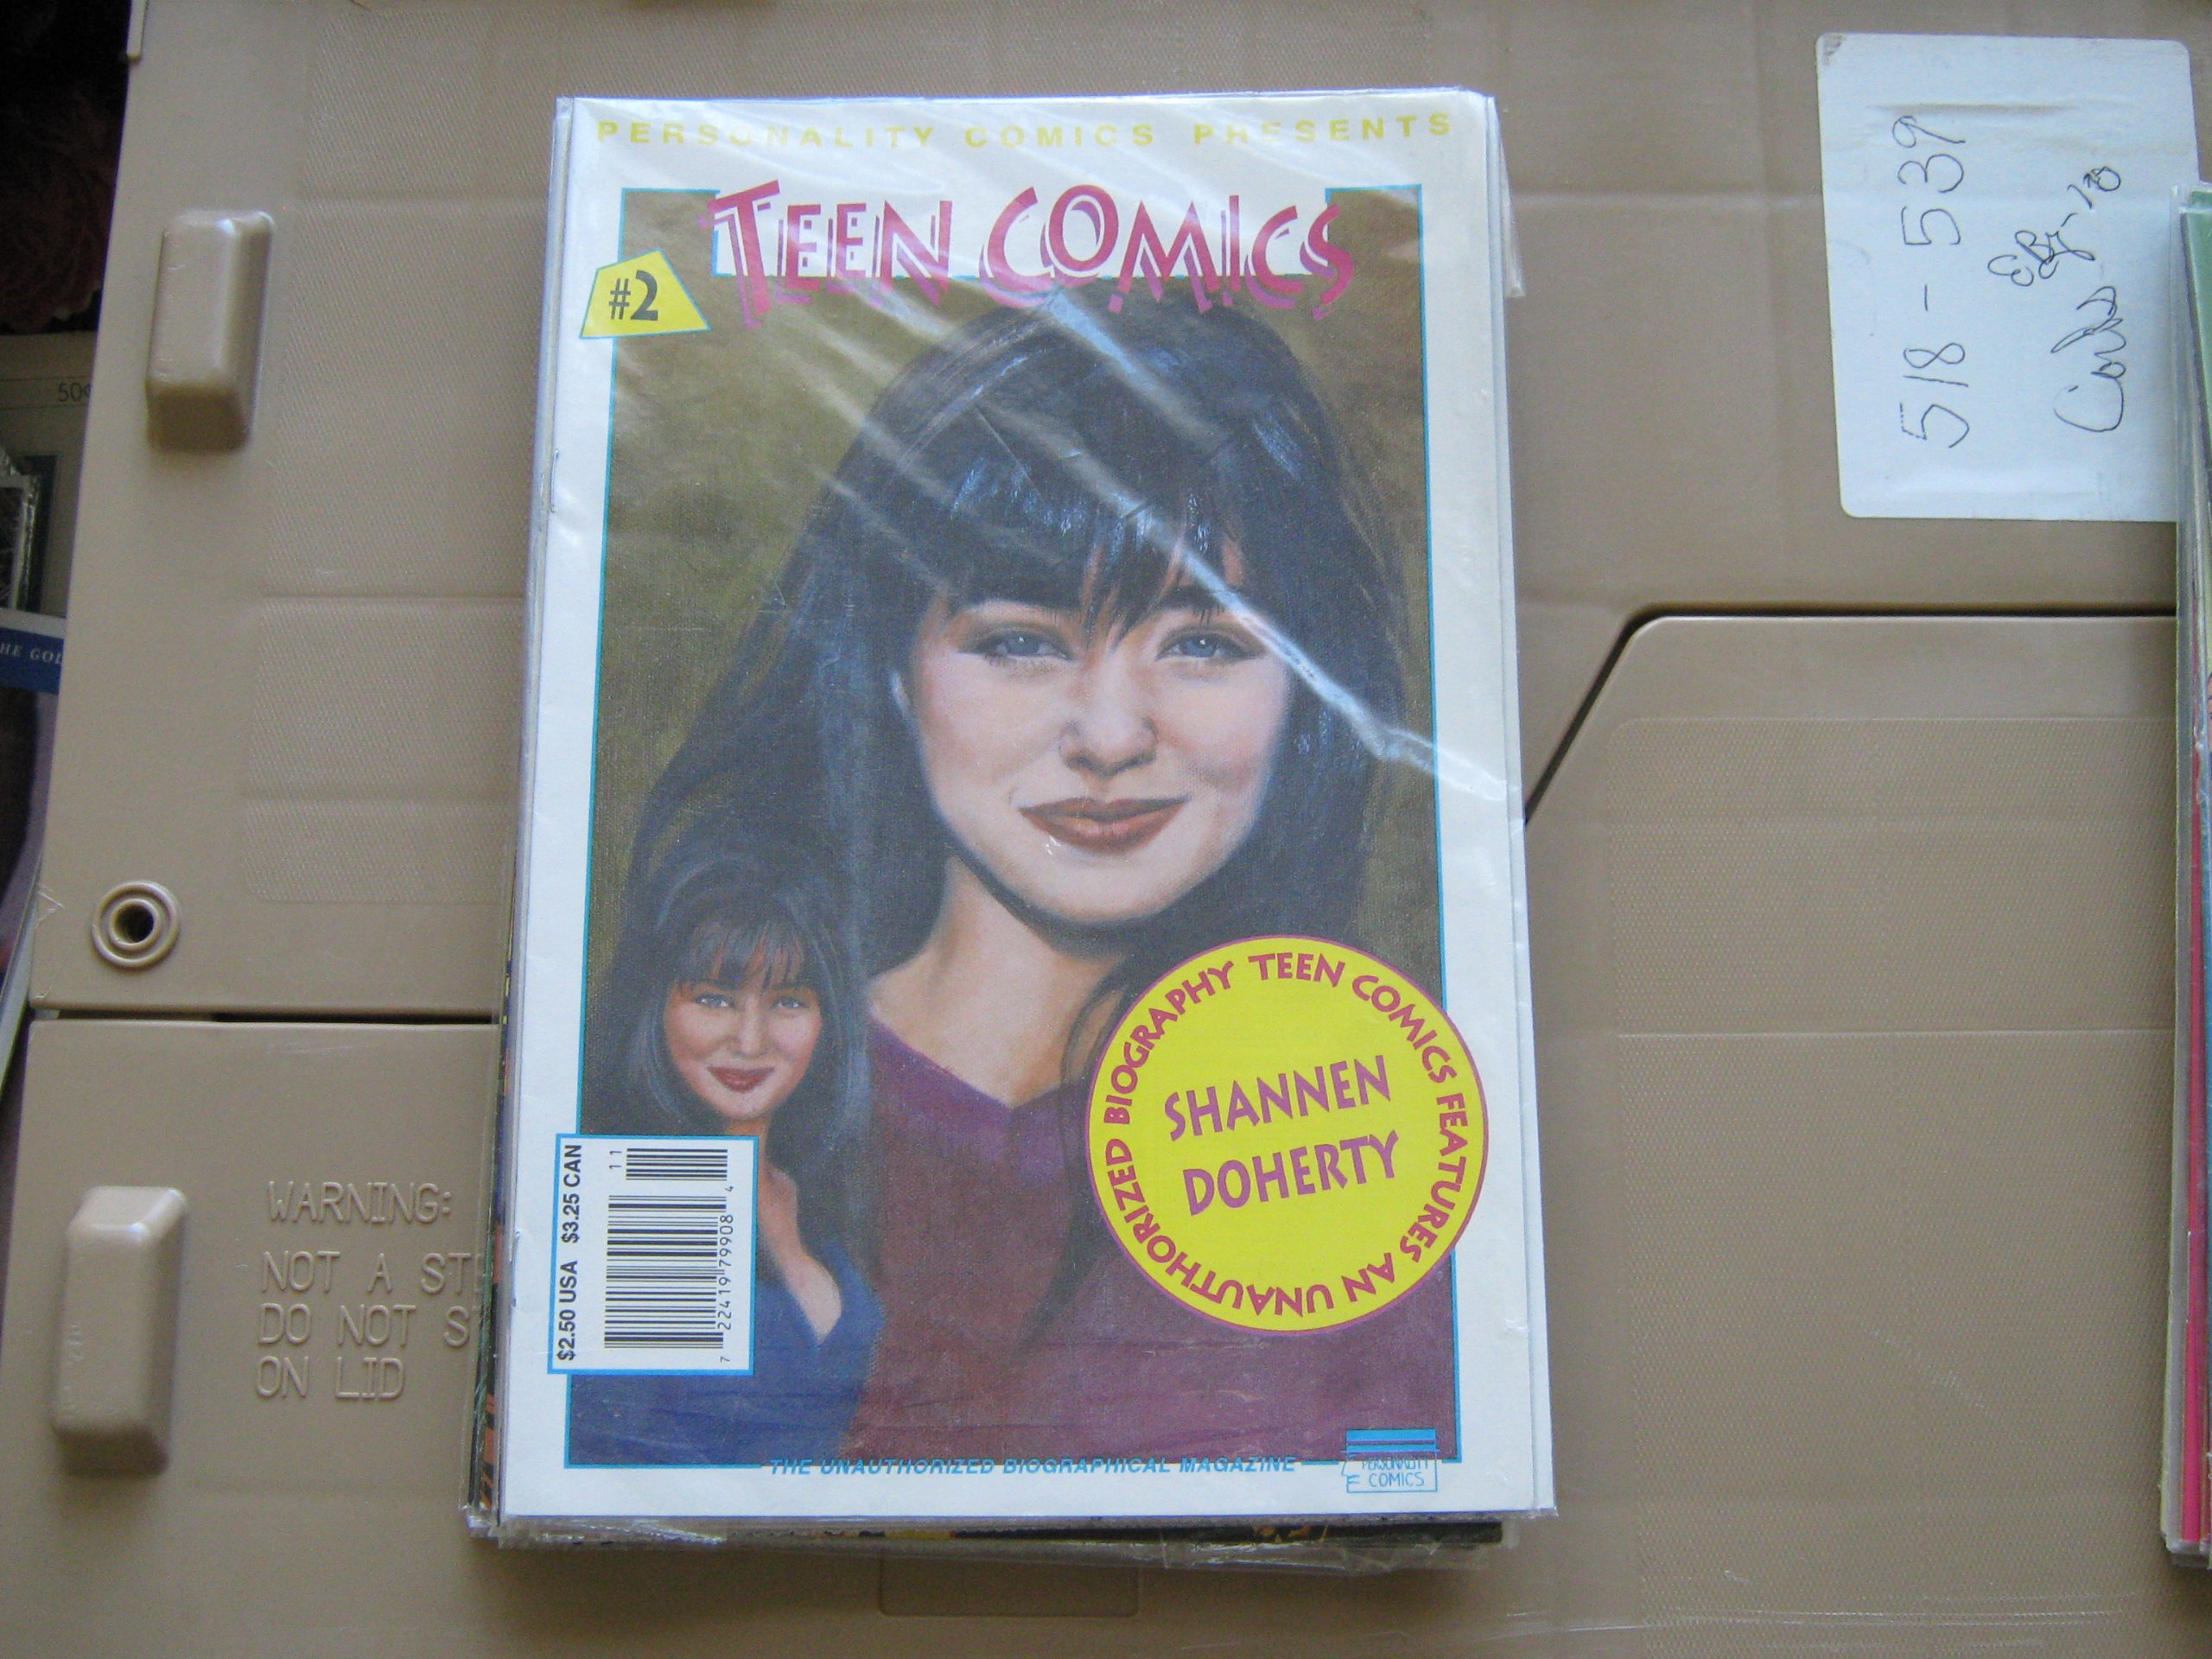 Agree teen picture of shannen doherty excellent and